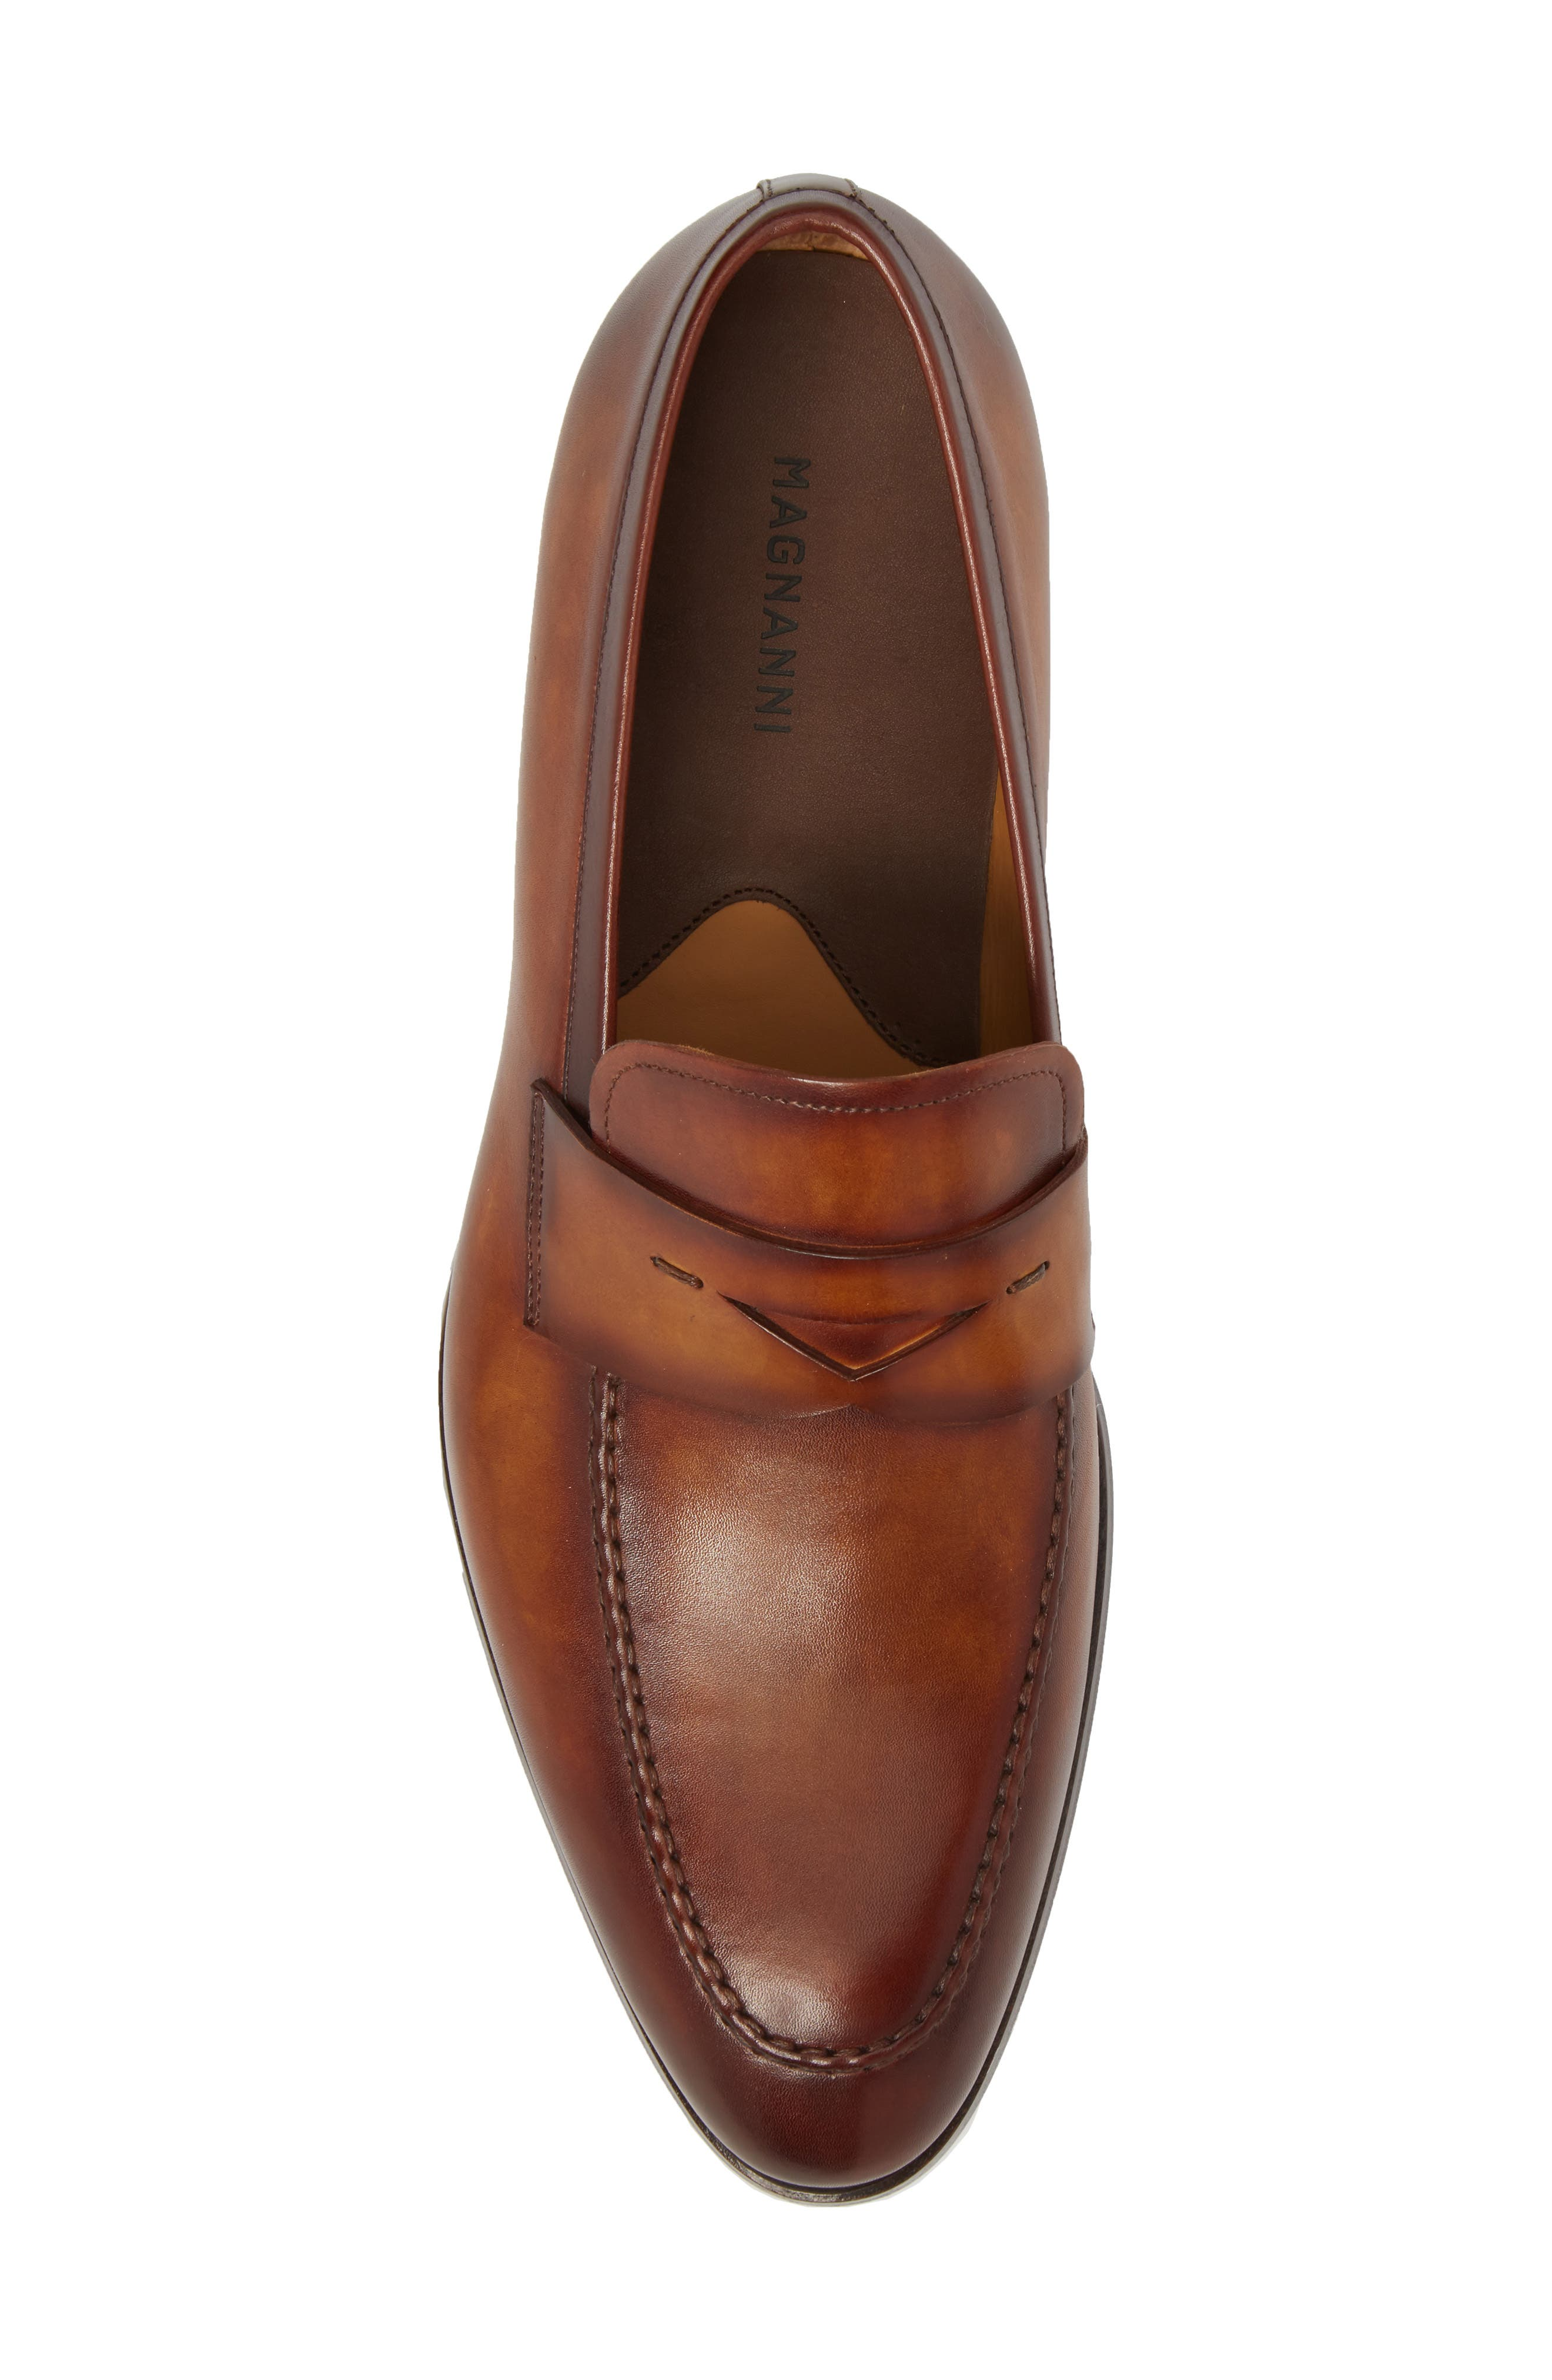 Rolly Apron Toe Penny Loafer,                             Alternate thumbnail 5, color,                             Brown Leather